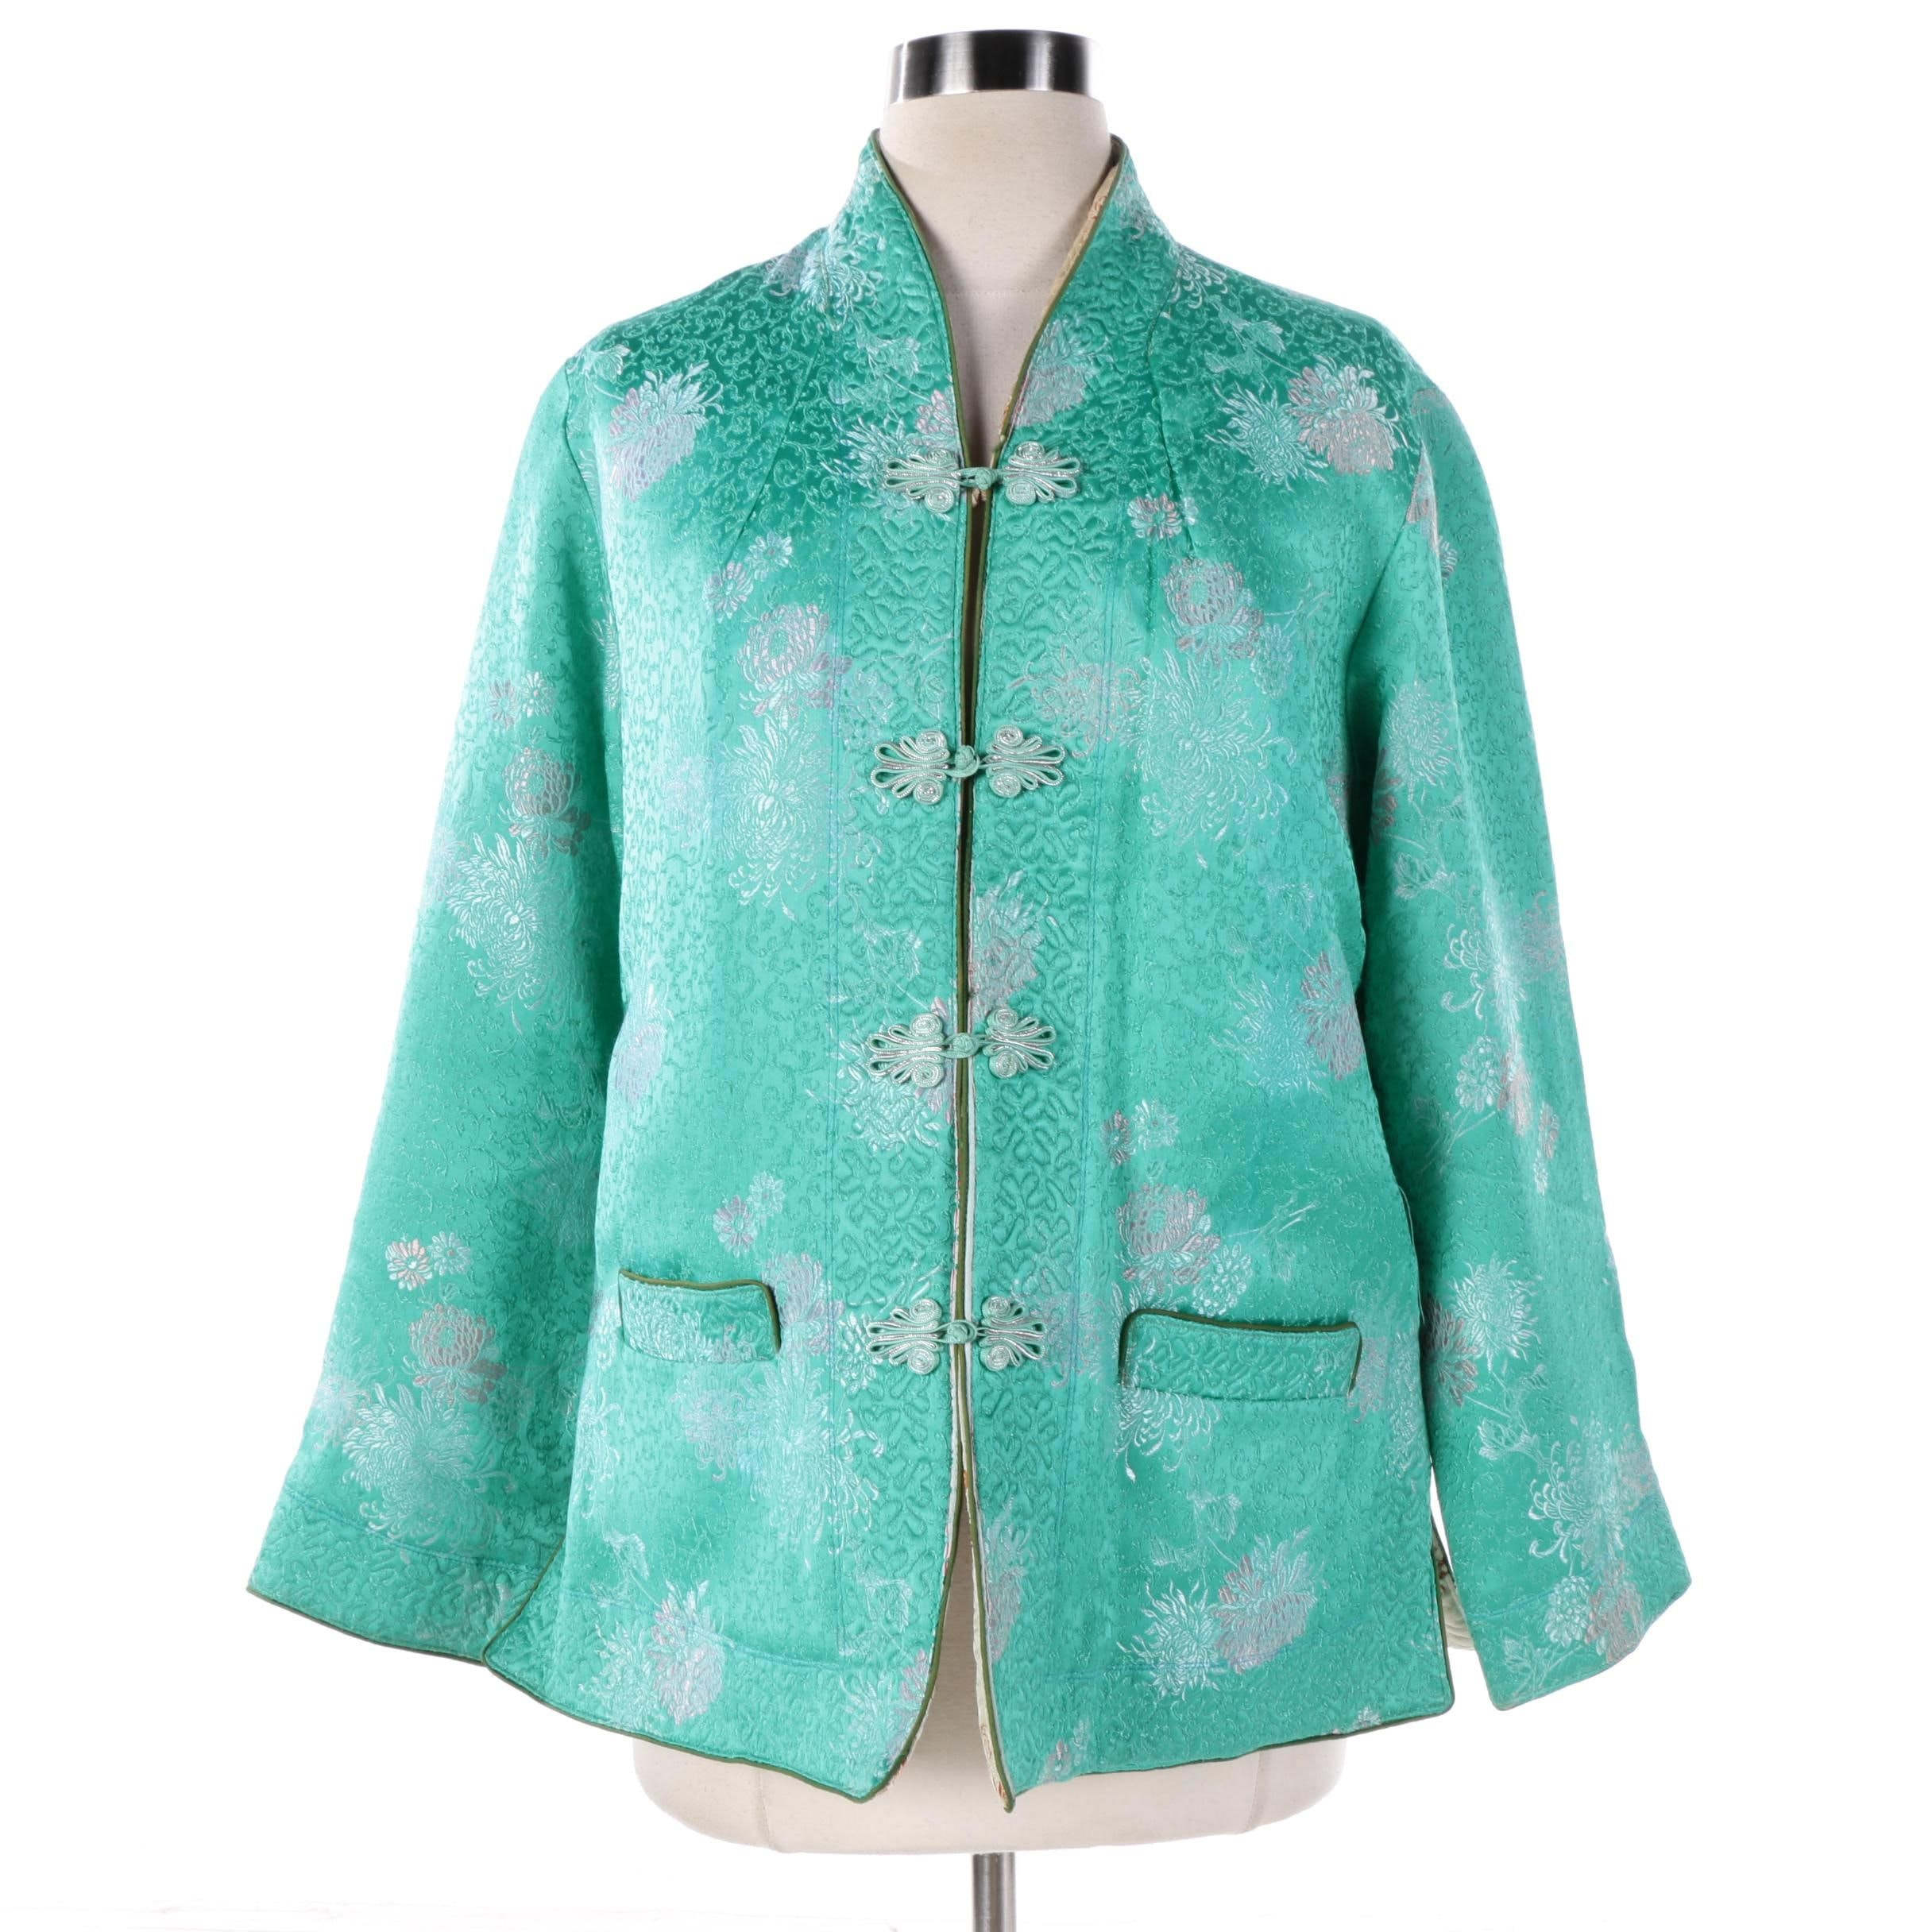 Women's Chinese Inspired Reversible Brocade Silk Jacket